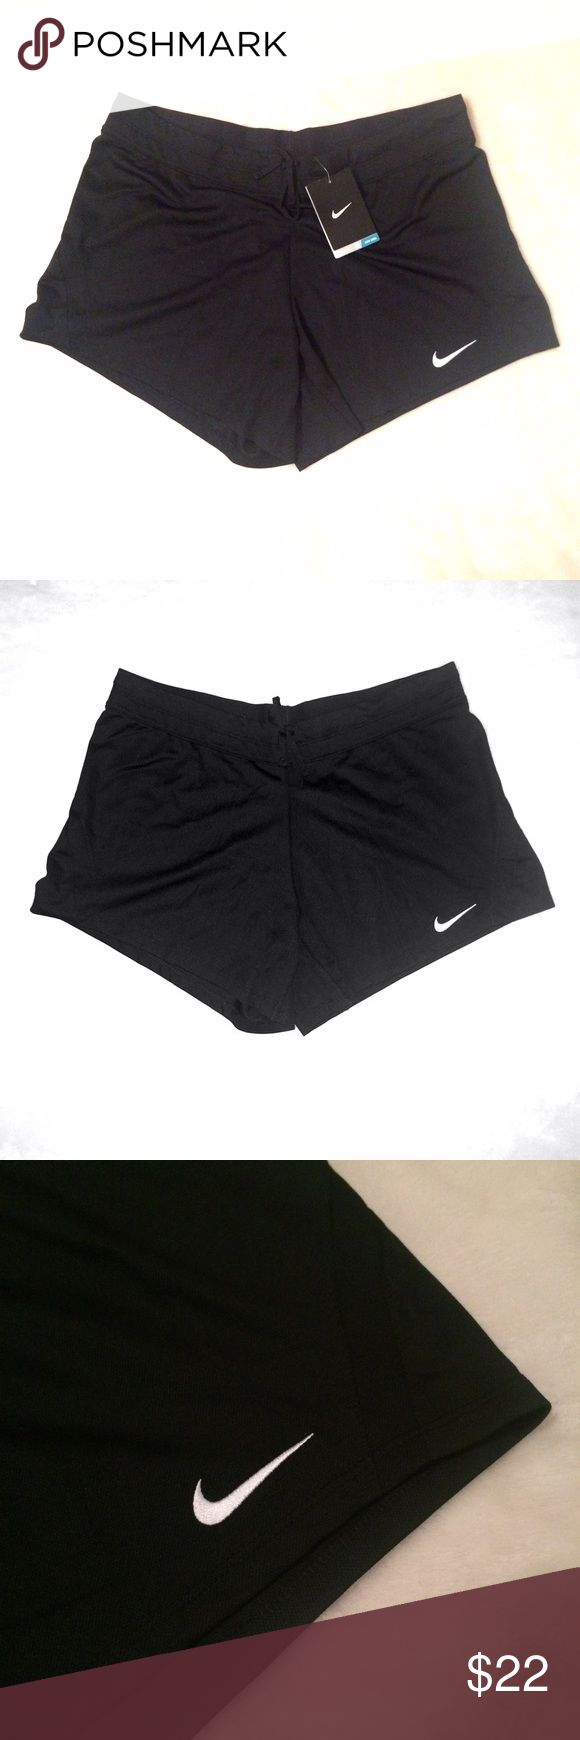 🆕 Women's Nike Infiknit Dri-FIT Training Shorts NWT!!! The Nike Infiknit Women's Training Shorts are made with a light, sweat-wicking fabric in a relaxed silhouette for comfort and freedom to move during your workout. 100% Dri-FIT Polyester. This listing is for a size large. Nike Shorts